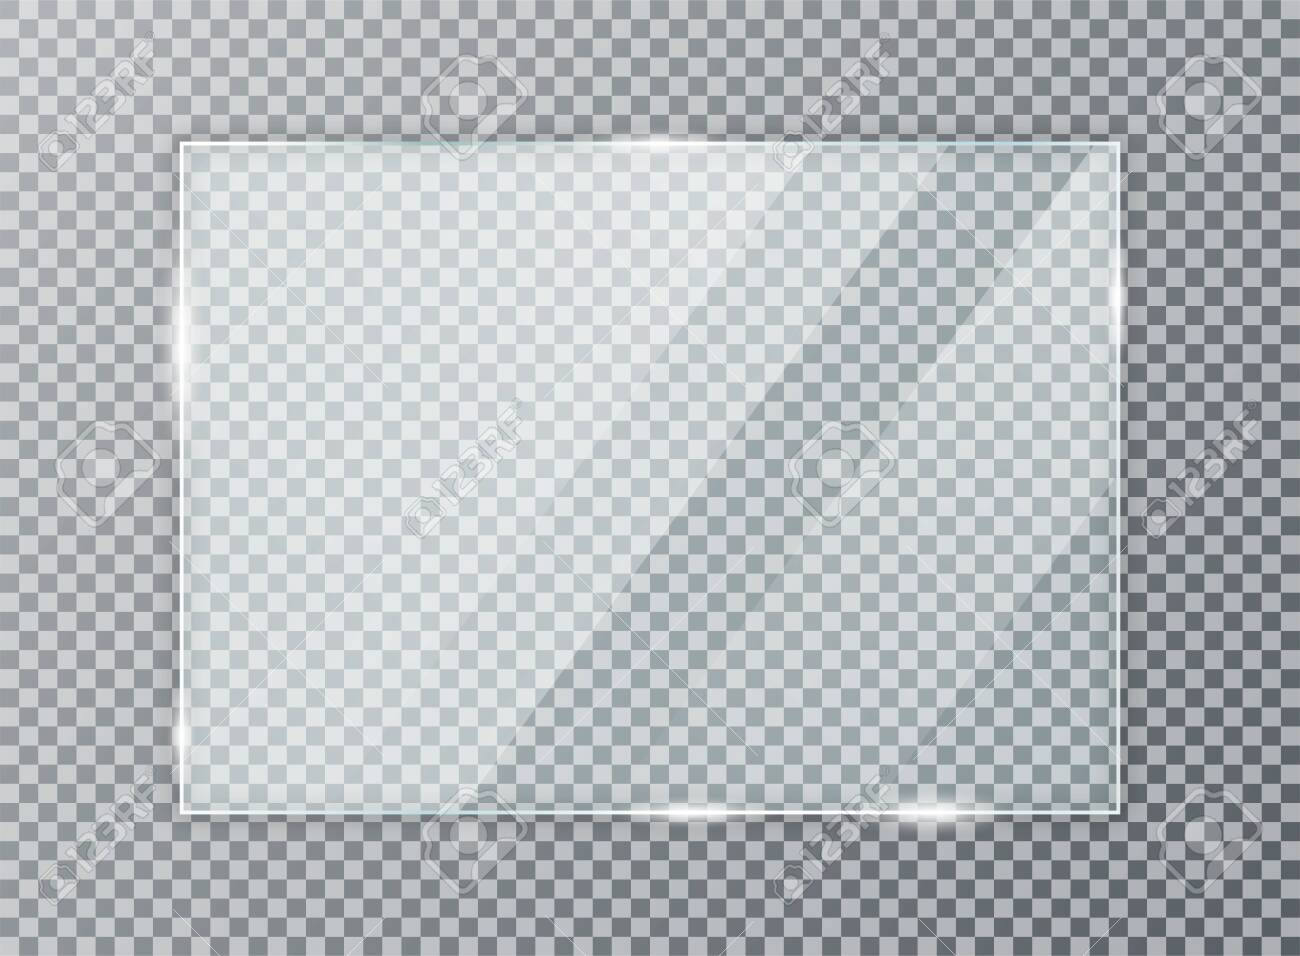 Glass plate on transparent background. Acrylic and glass texture with glares and light. Realistic transparent glass window in rectangle frame. - 128327682